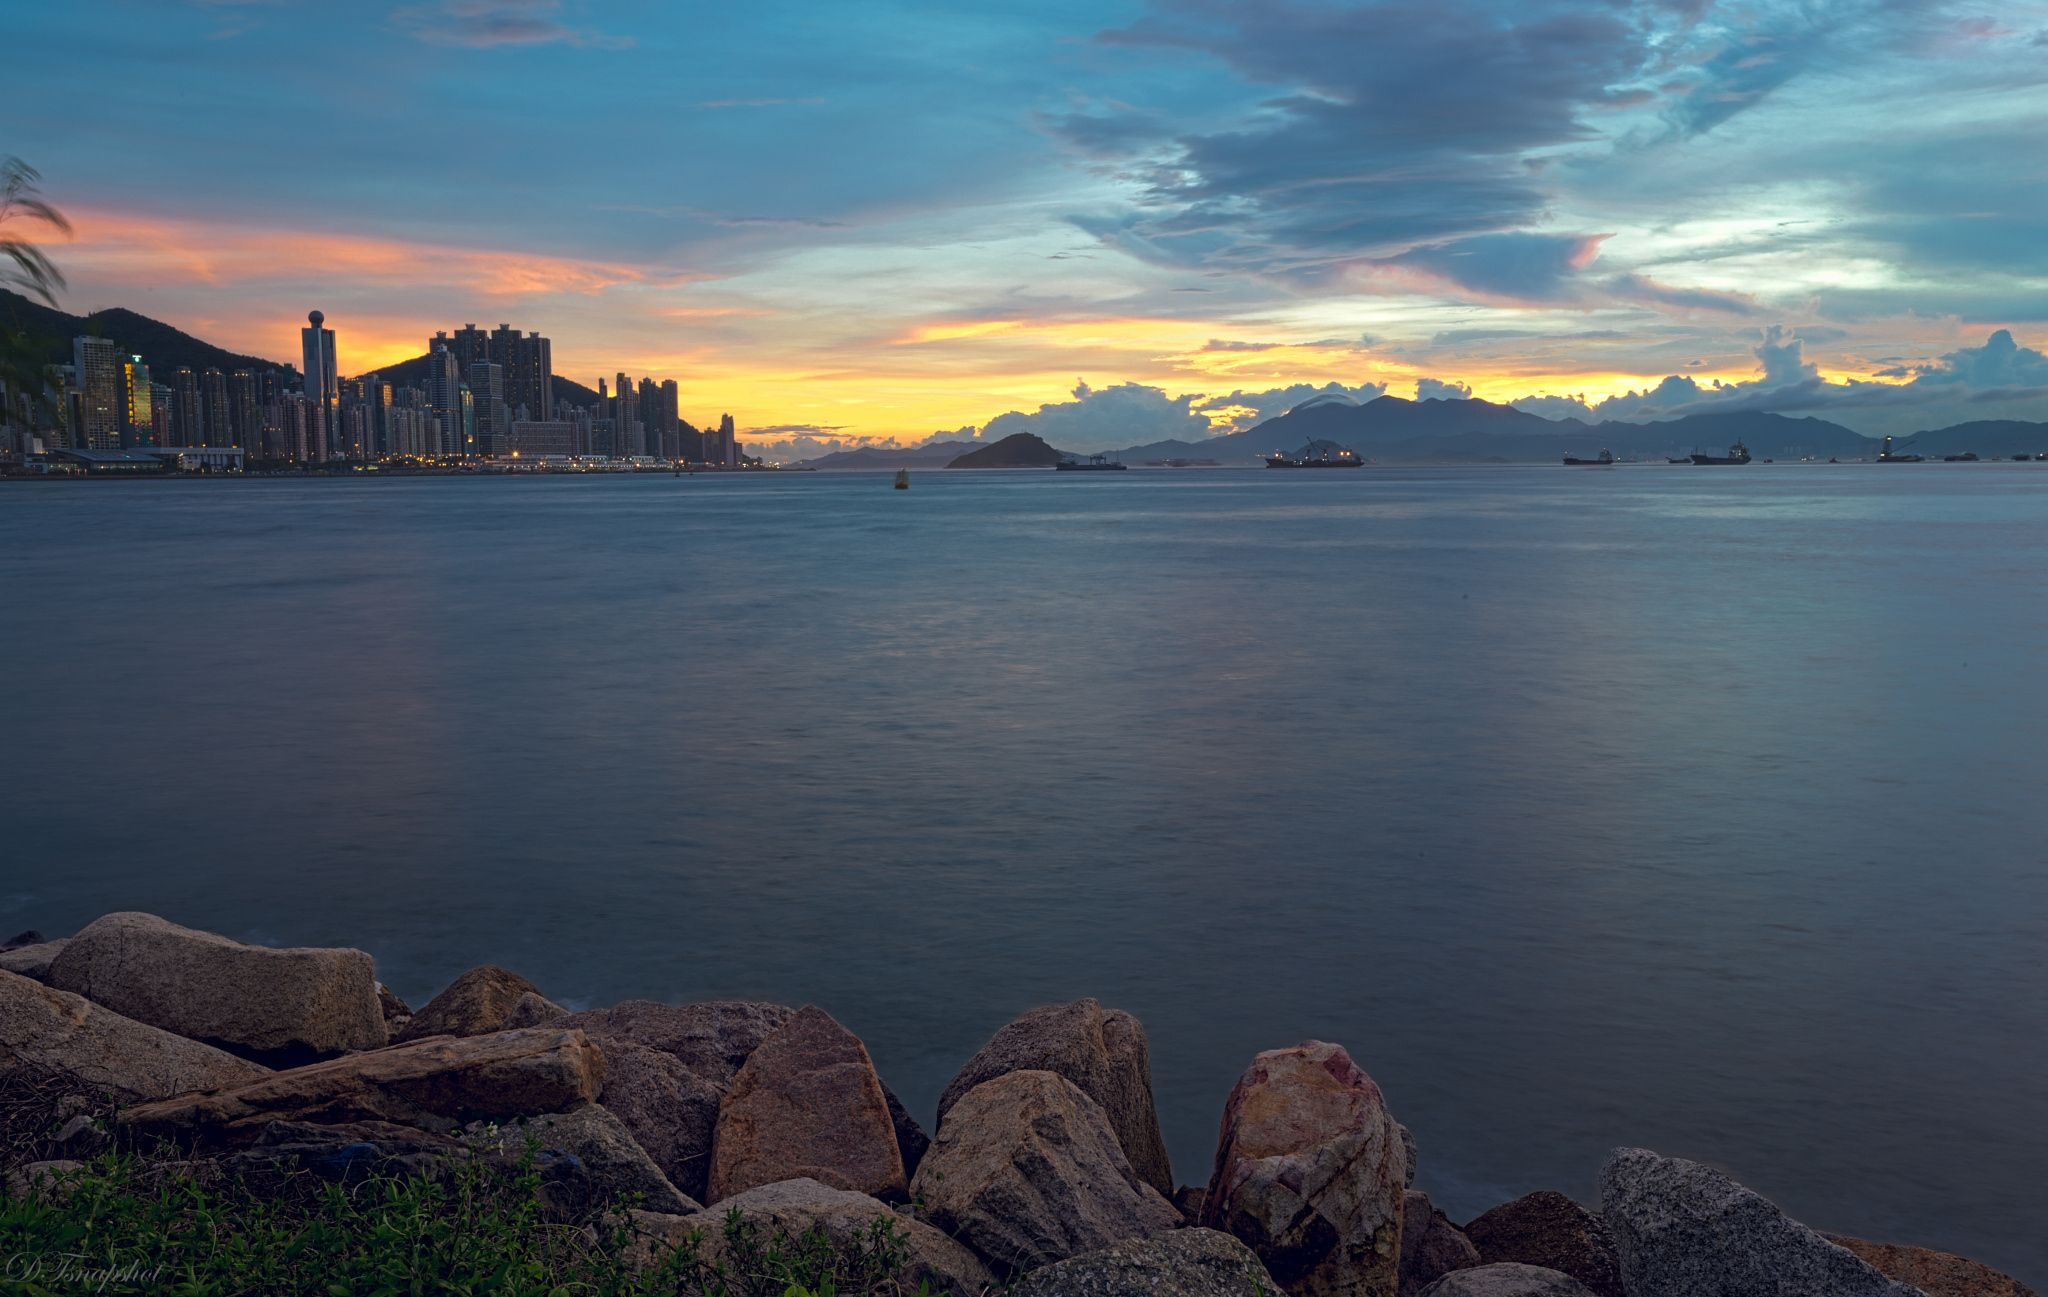 Magic hour at West Kowloon by Desmond Tam - Photo 116884799 - 500px